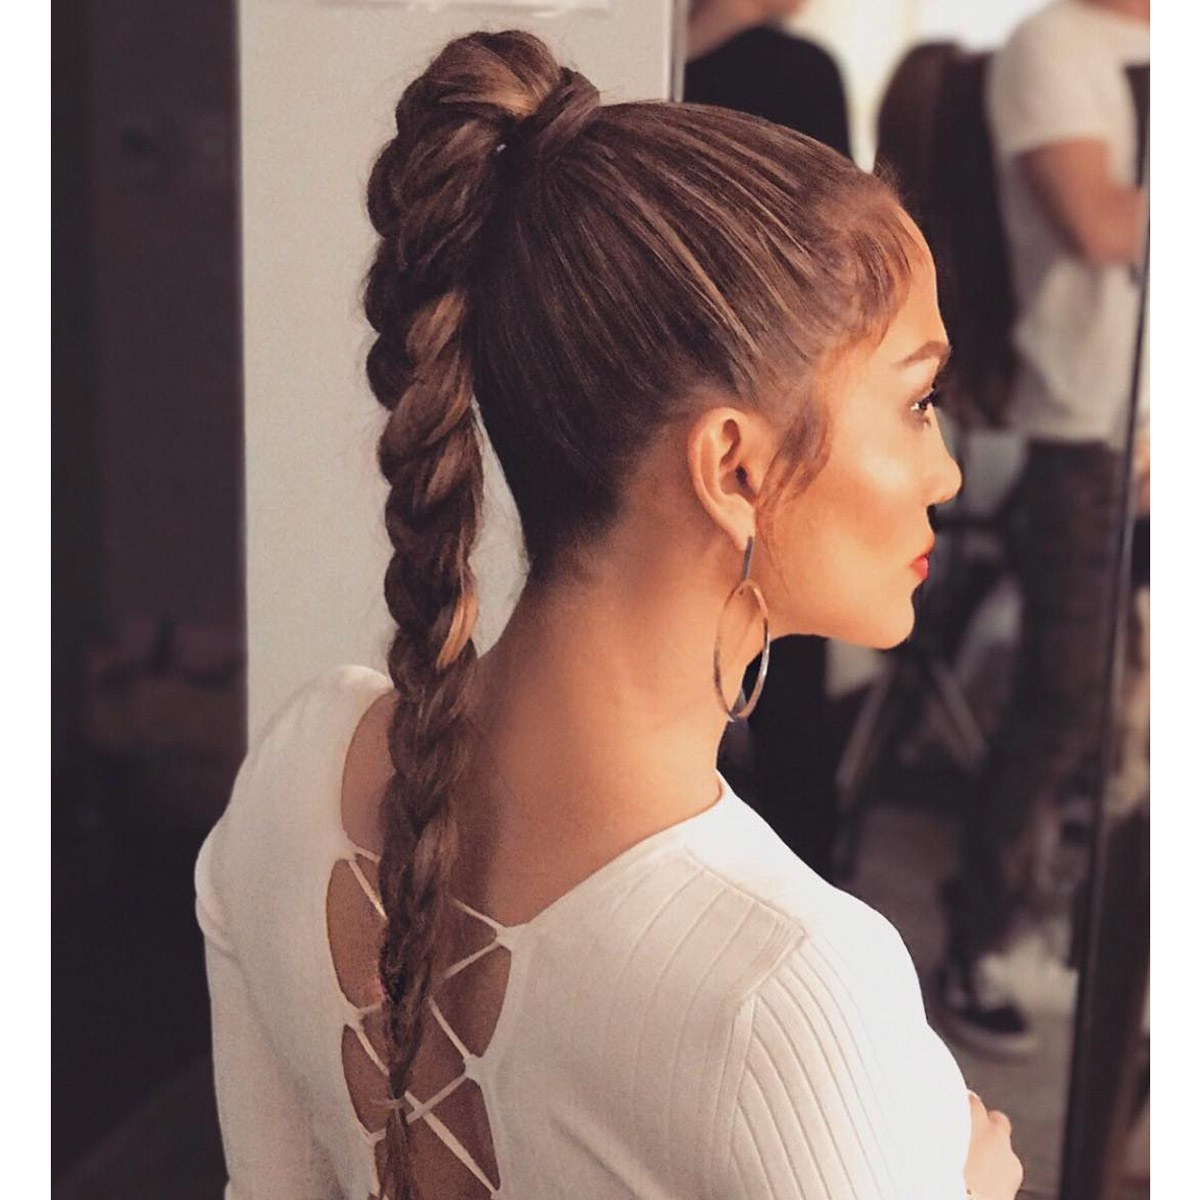 Glamour Intended For Fashionable Twist Into Ponytail Hairstyles (Gallery 20 of 20)